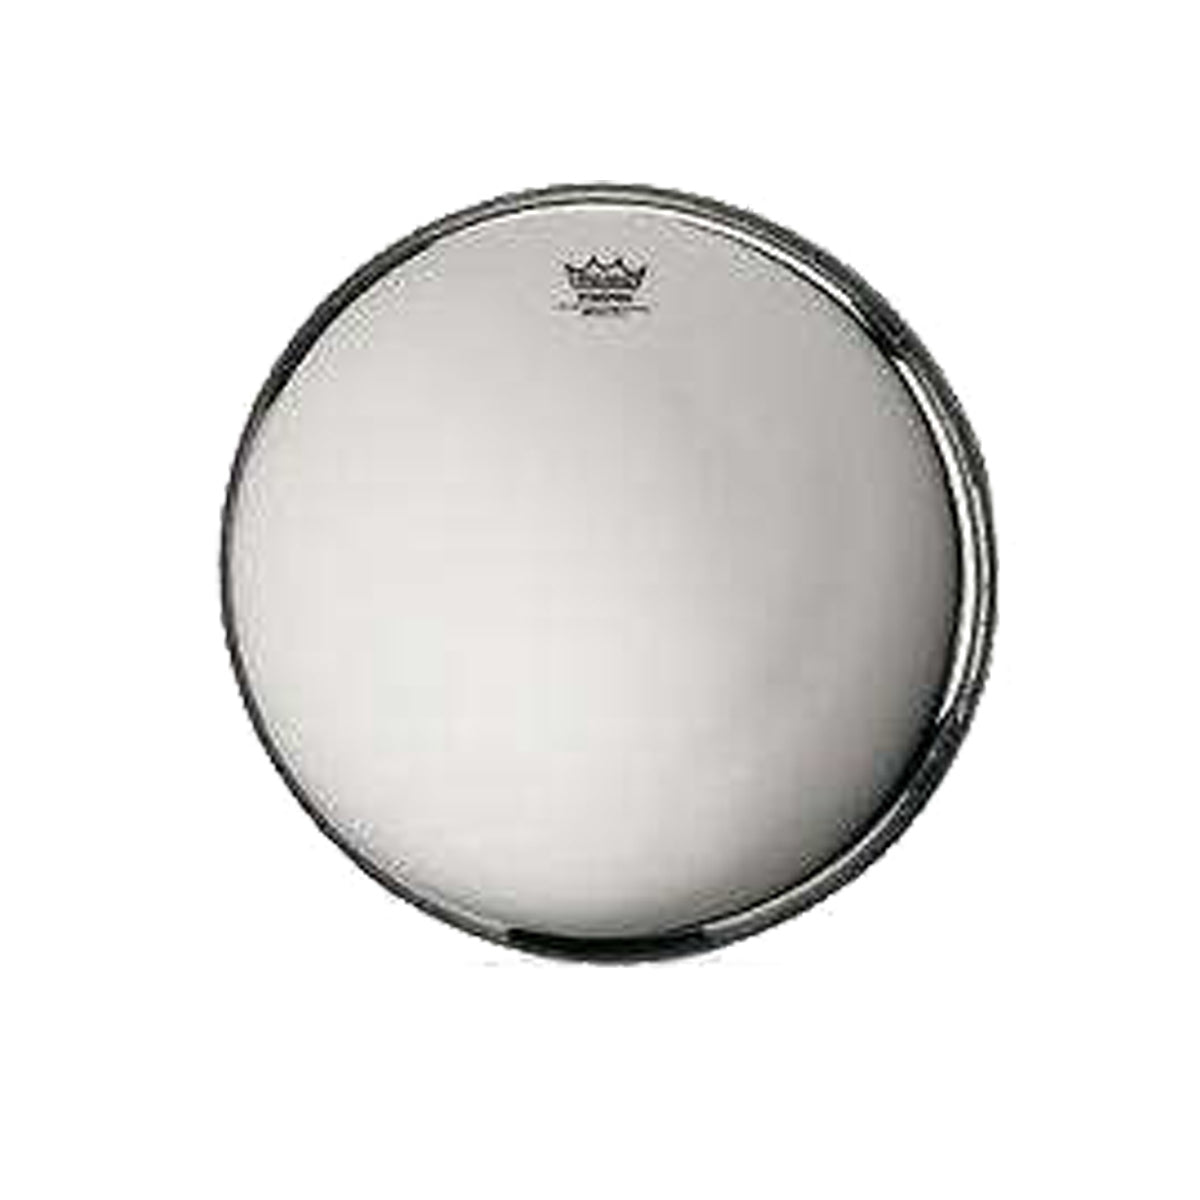 Remo CR-1022-00 22inch Ambassador Starfire Chrome Head Drum Skin